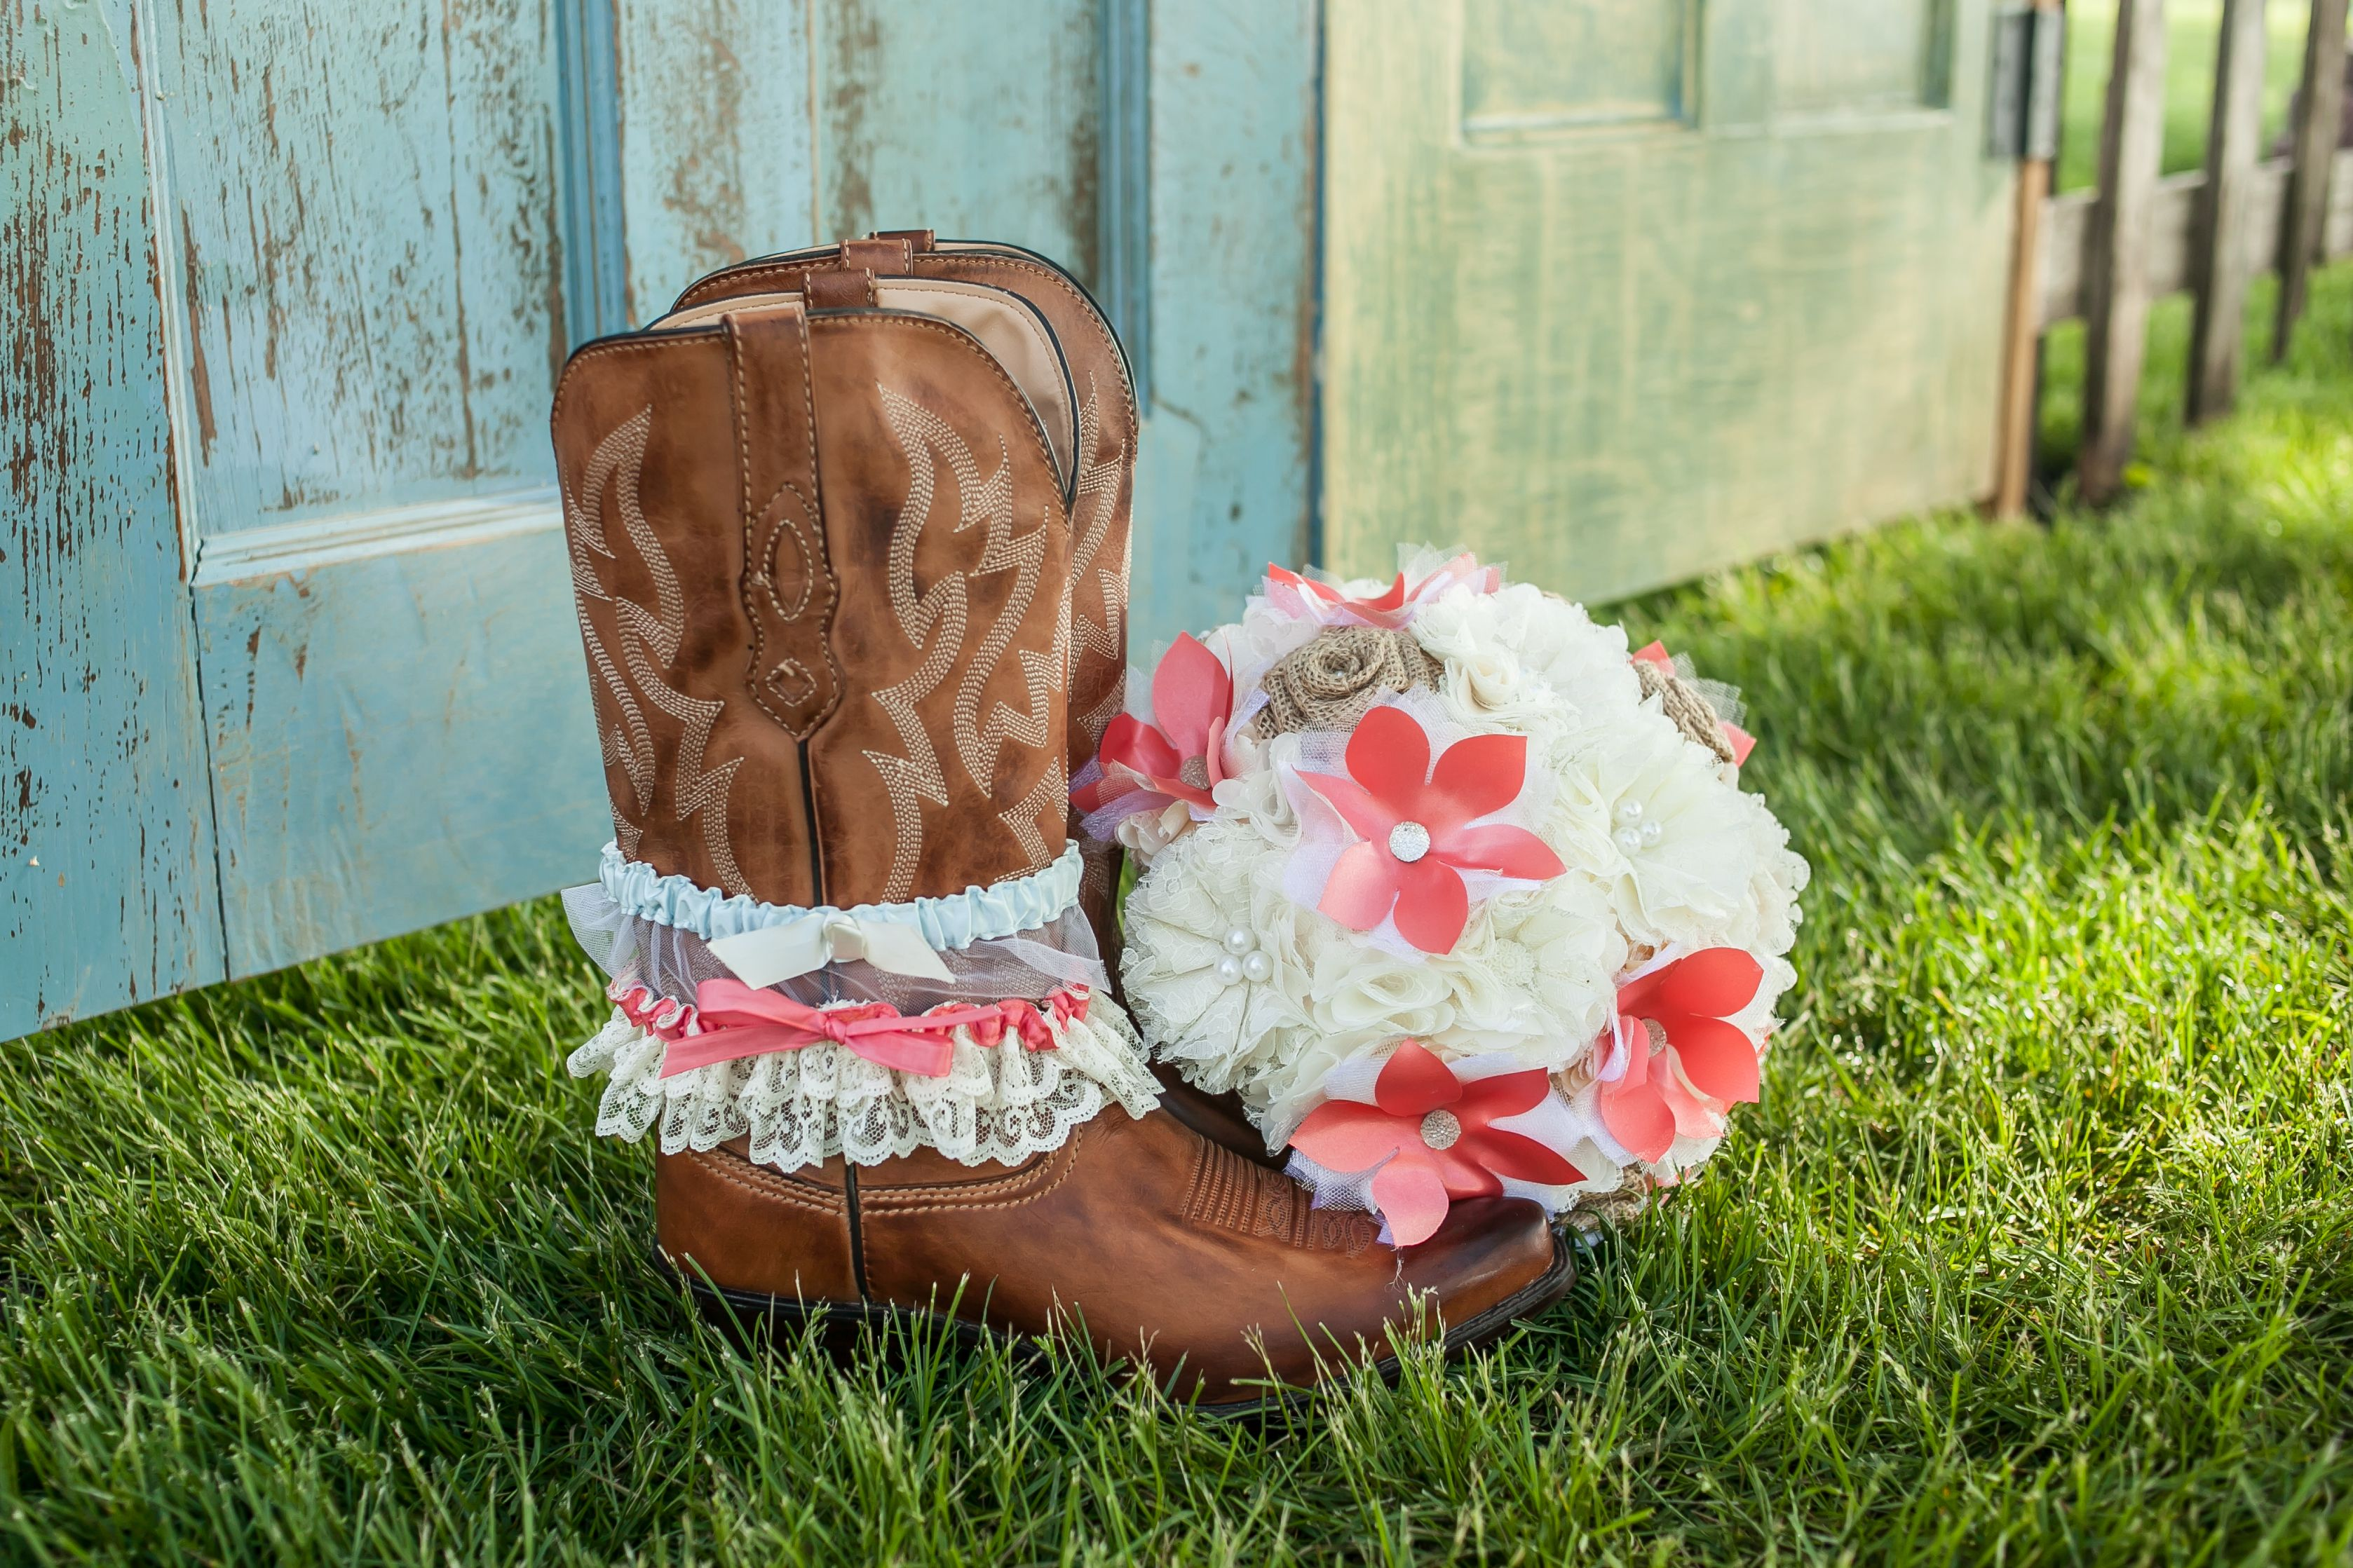 boots and bouquet | rustic wedding |  Photo by Le Photo Design www.lephotodesign.com www.facebook.com/lephotodesign   |  Bouquet by BouquetsByKeepsakes https://www.etsy.com/shop/BouquetsByKeepsakes